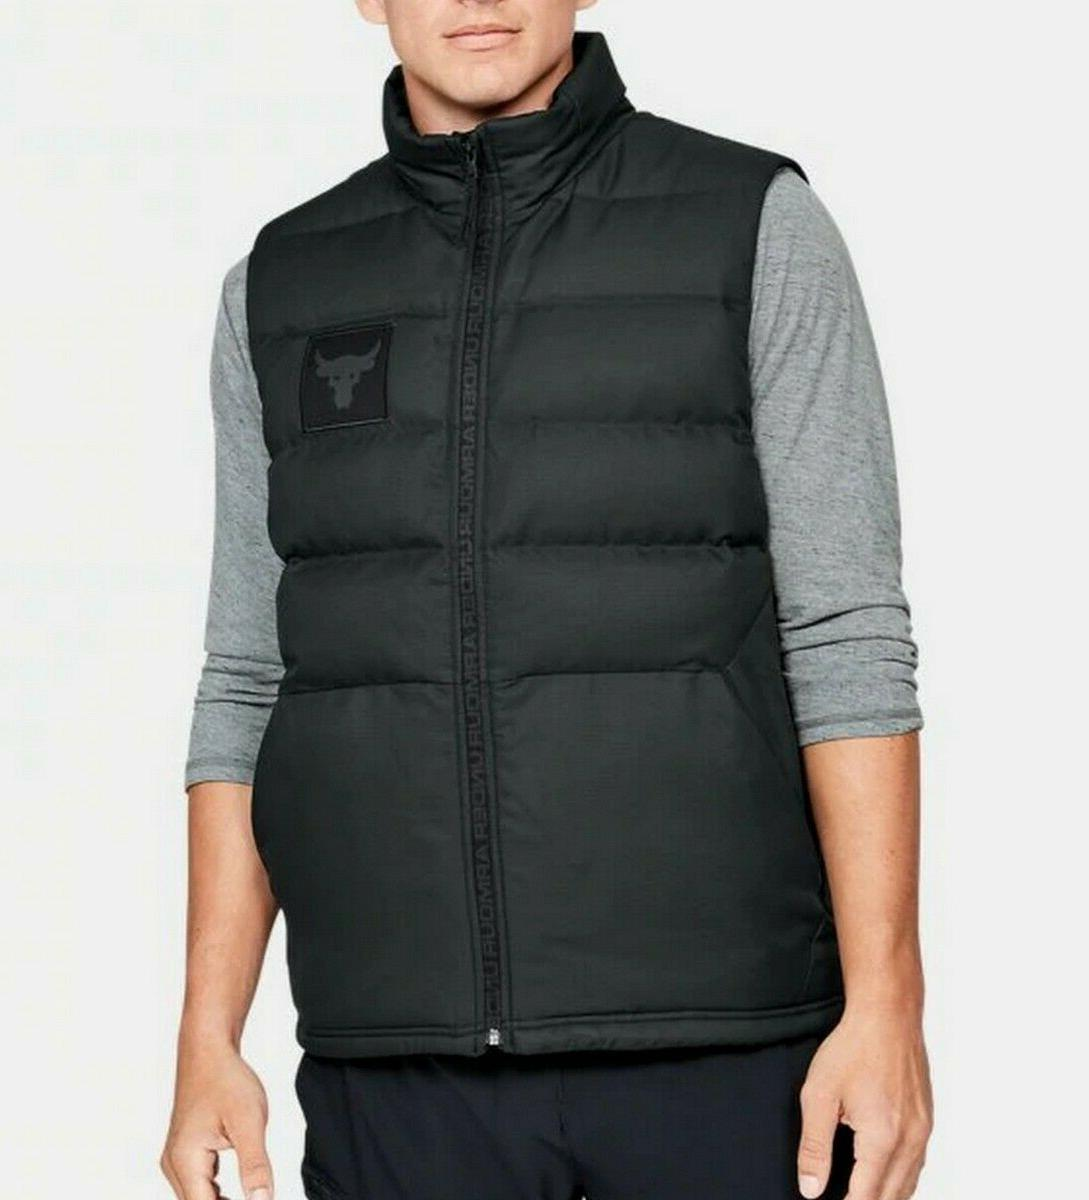 Under Armour Men's UA Project Rock Down Filled Vest 700 Fill